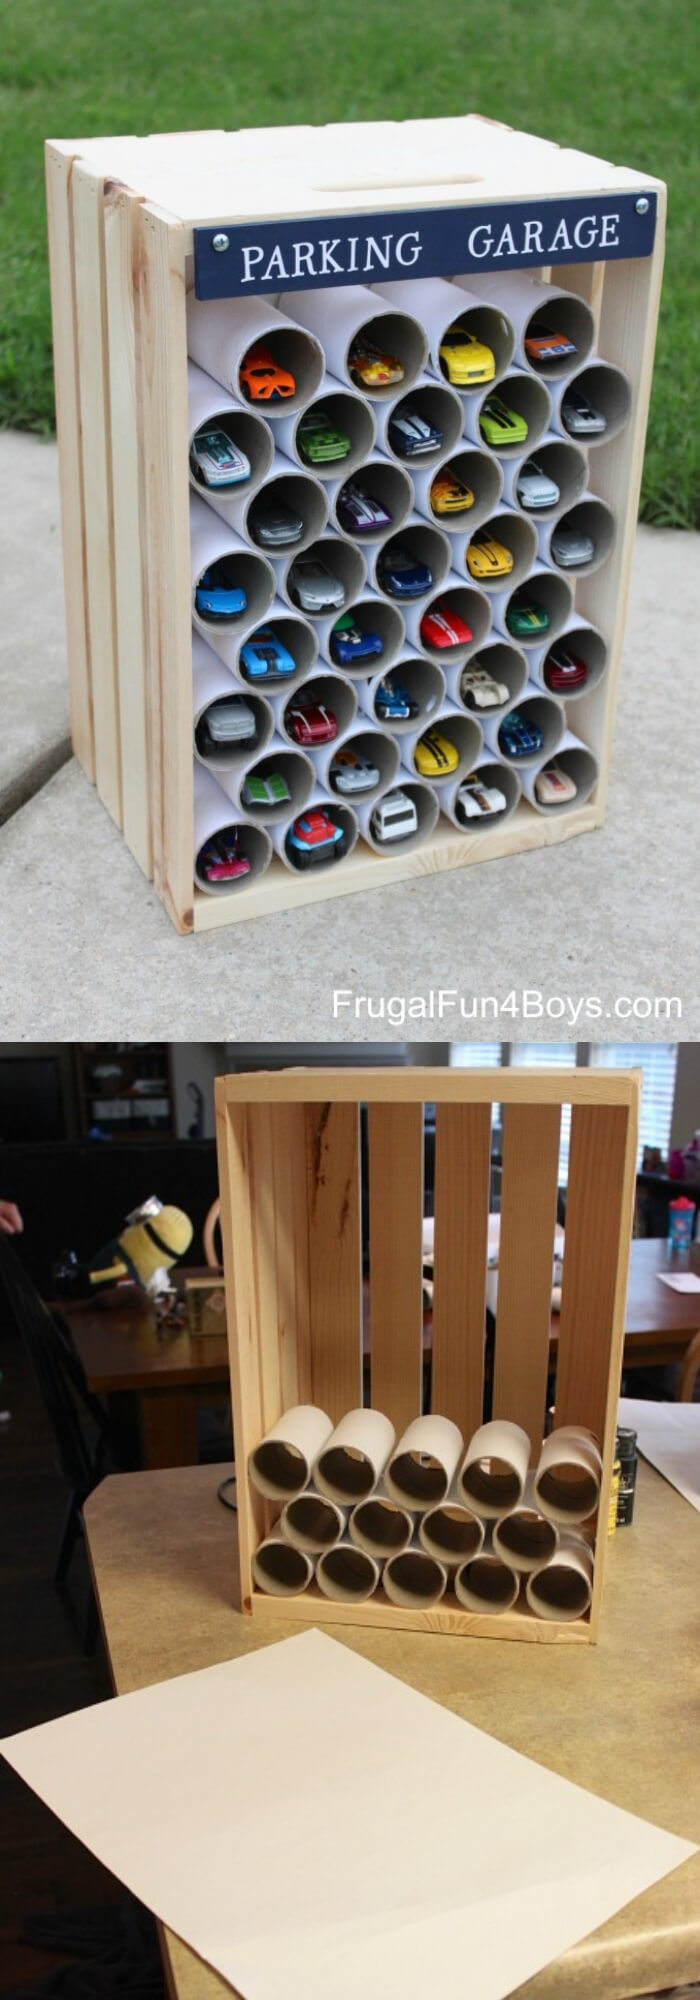 Wooden crate parking garage | Best DIY Wood Crate Projects & Ideas